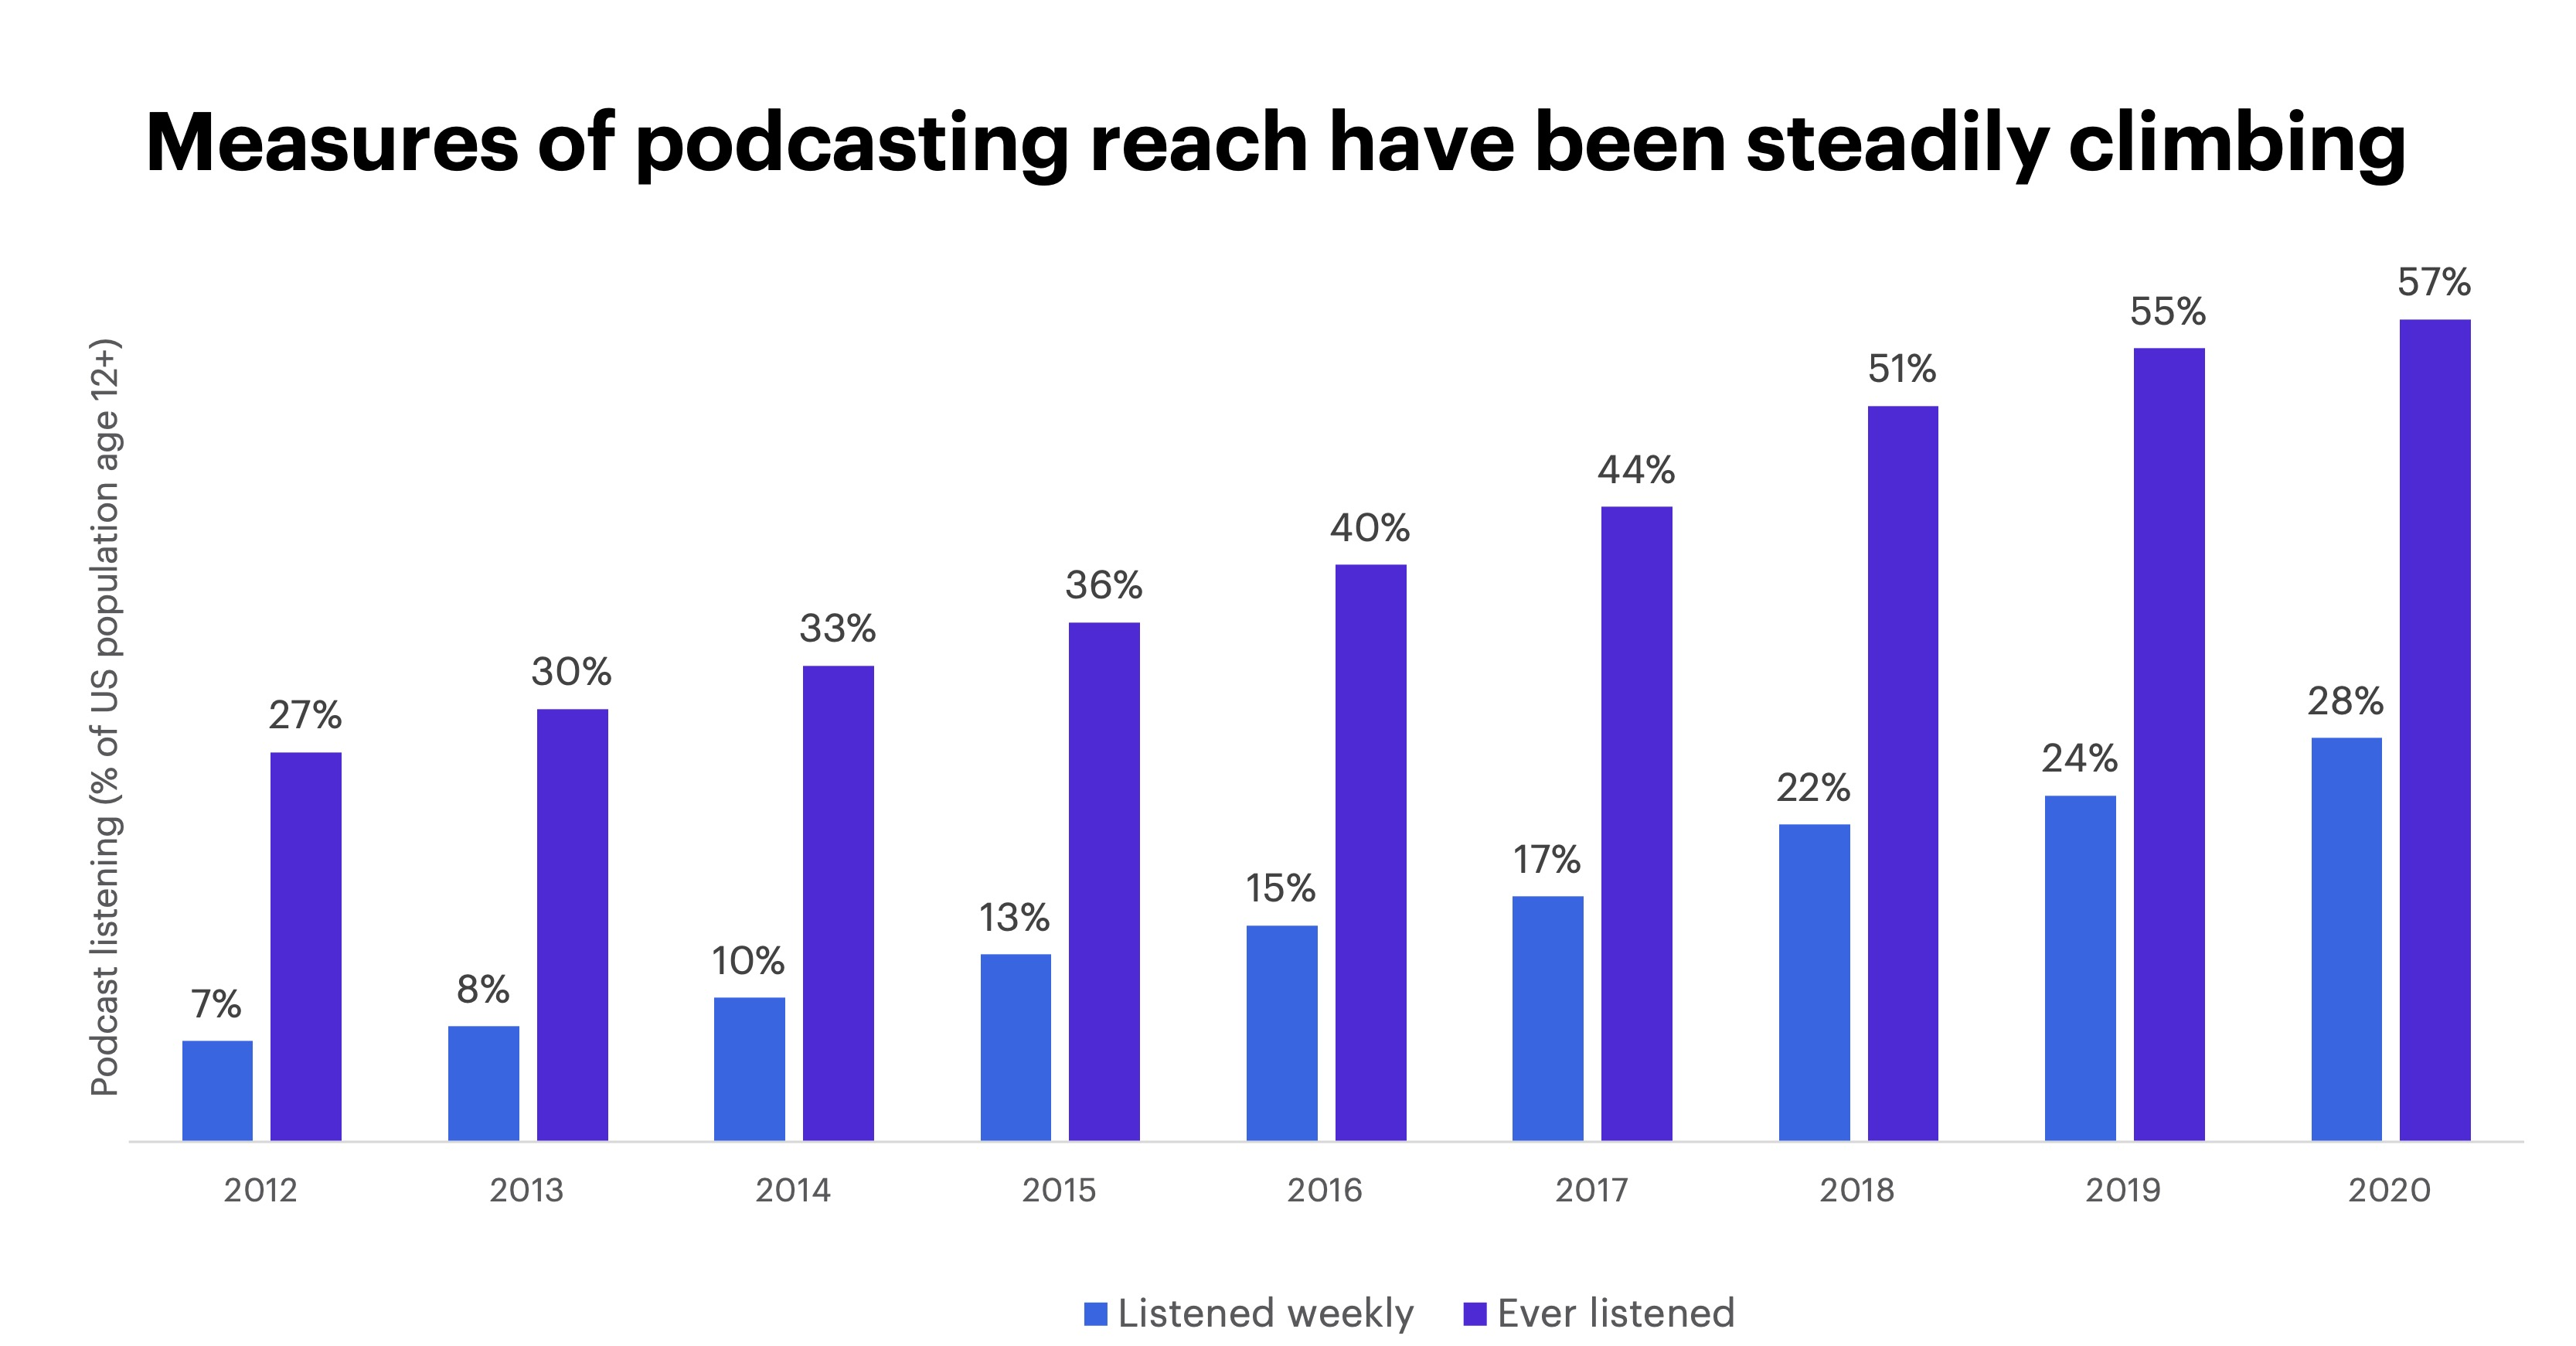 Measures of podcasting reach have been steadily climbing